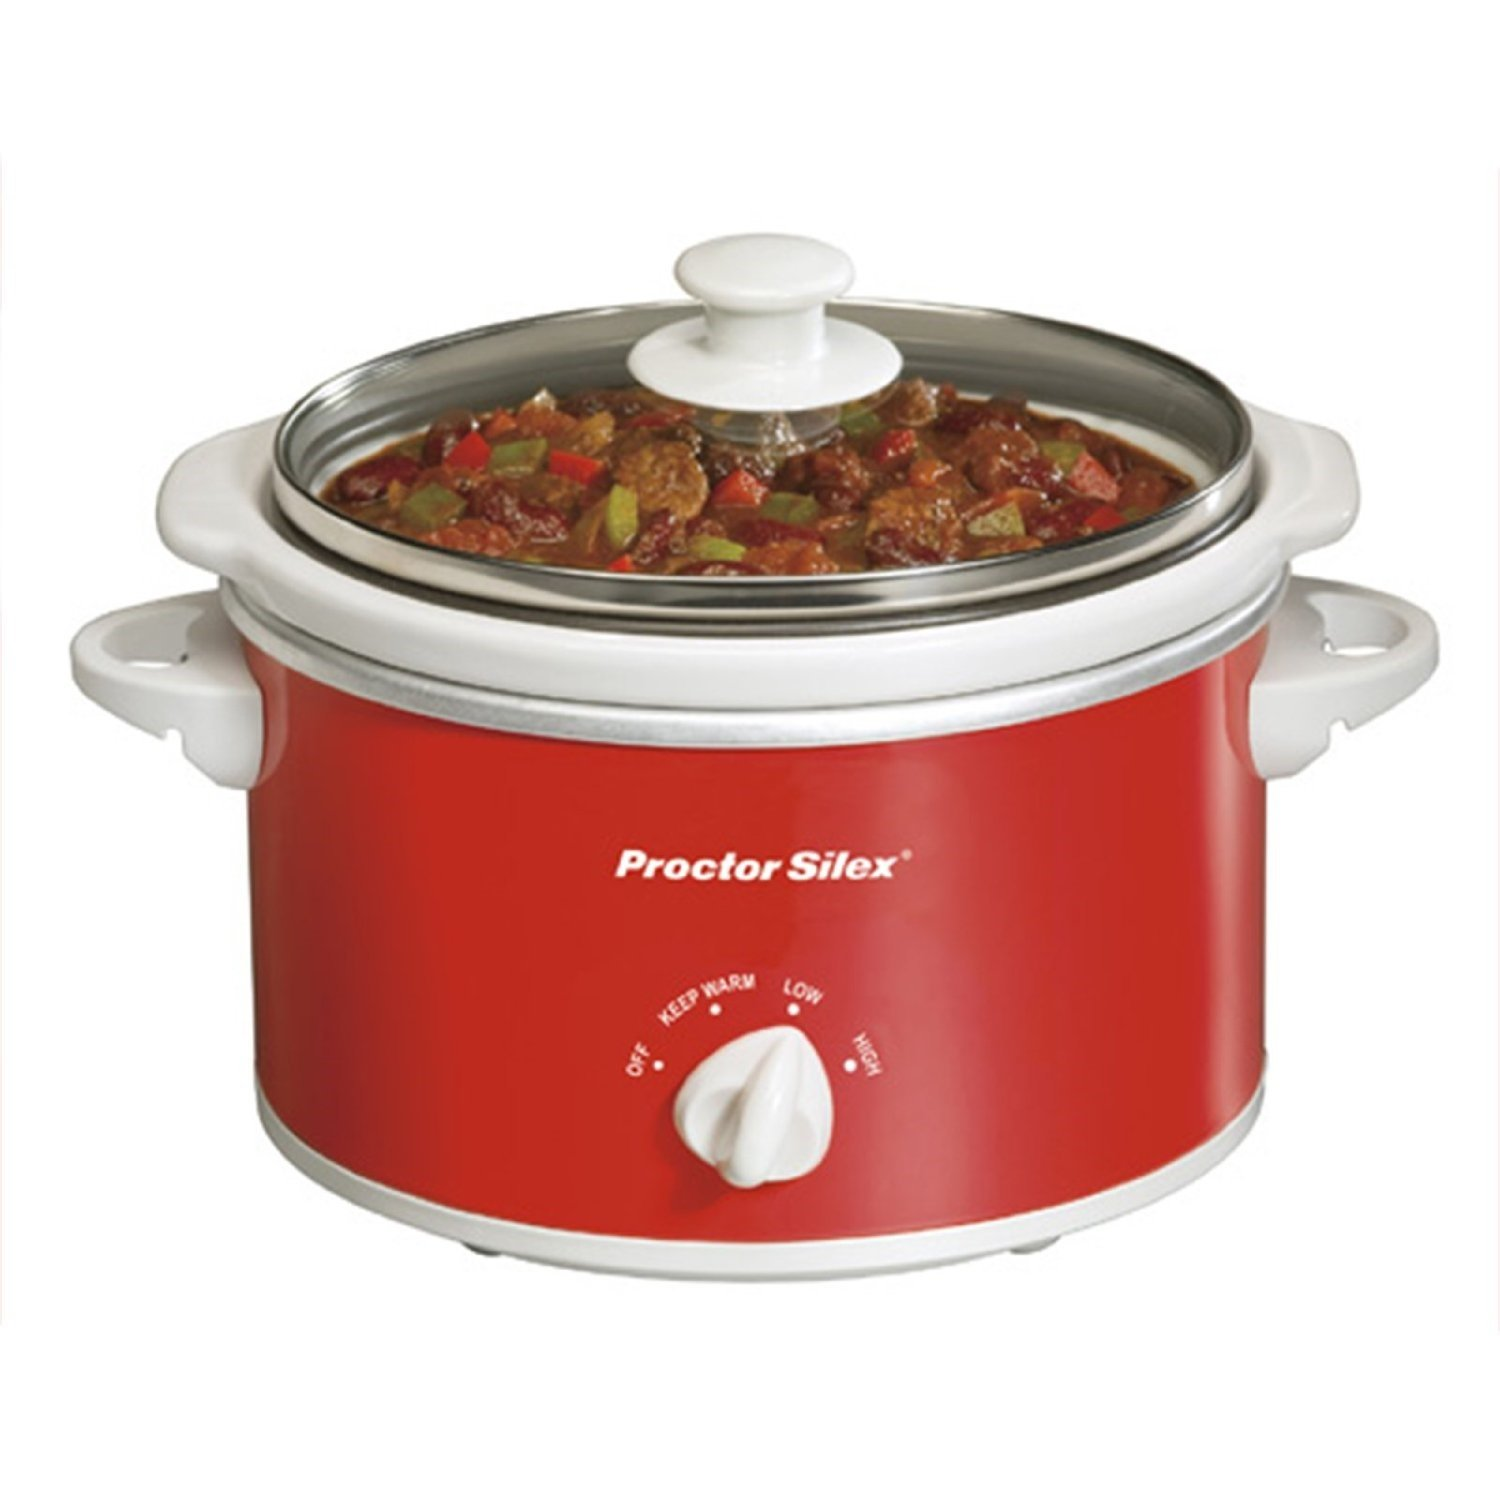 Proctor Silex Portable Oval Slow Cooker, 1.5-Quart